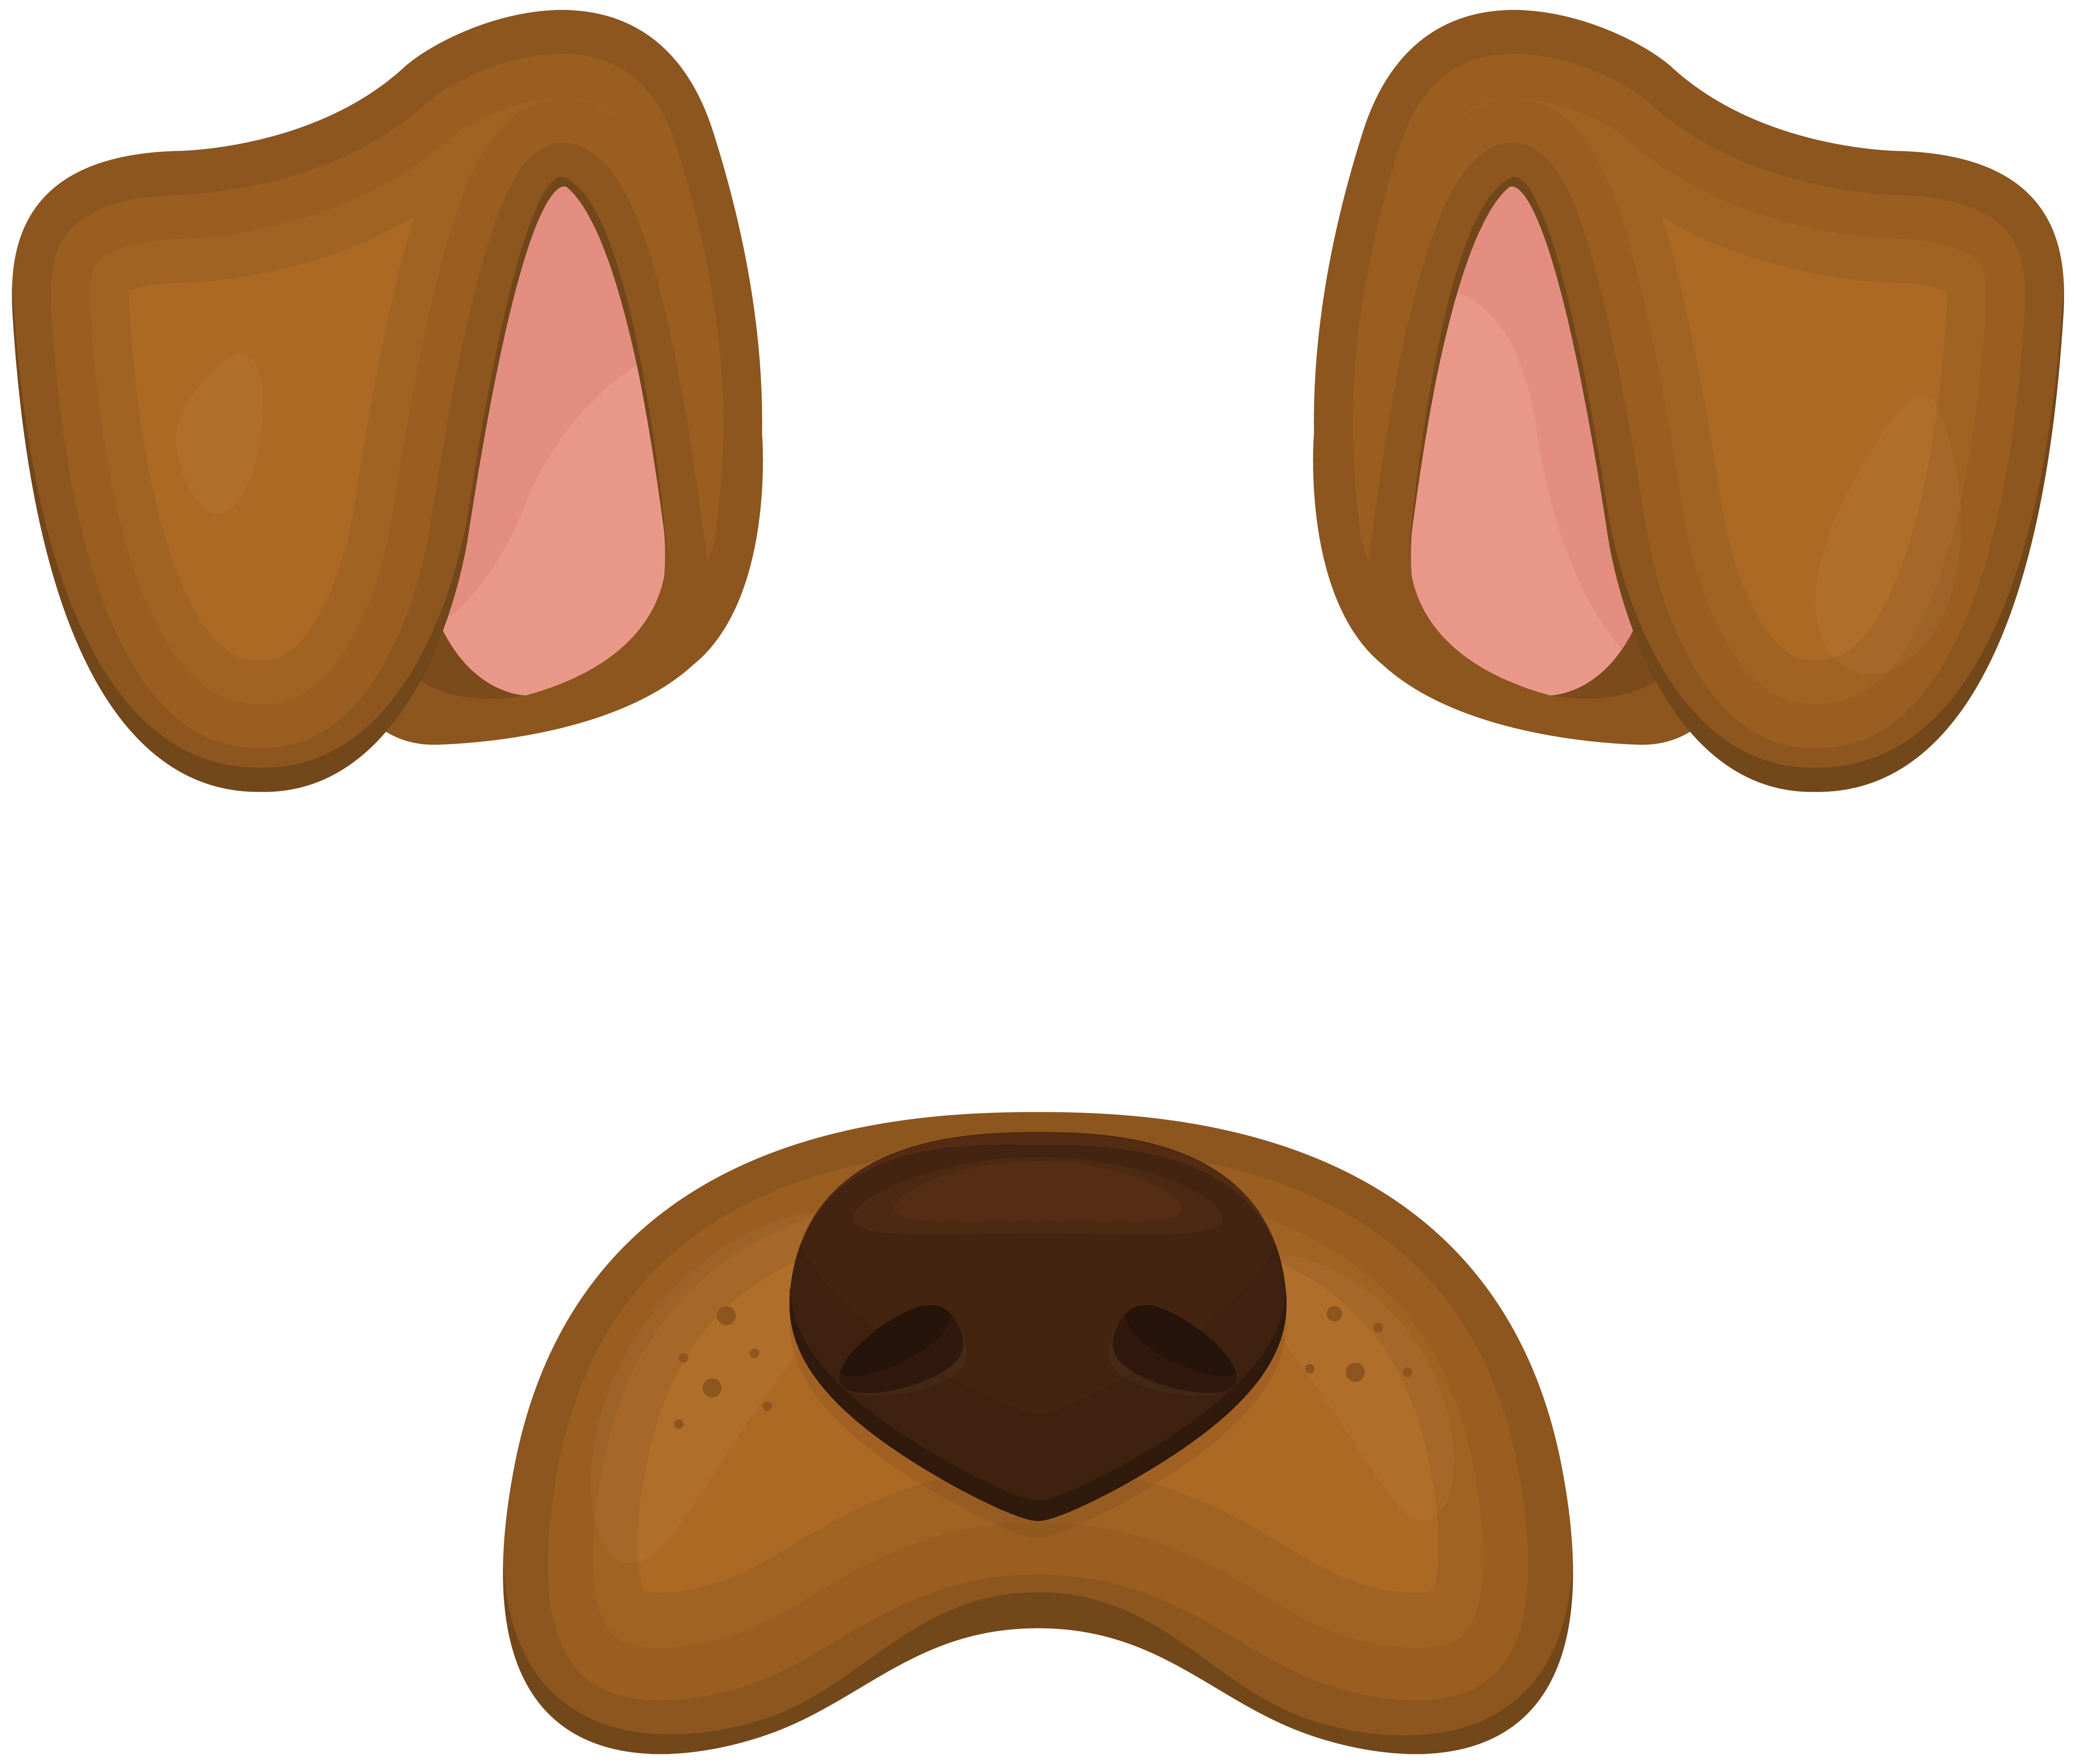 Happy dog face clipart png royalty free download Dog Face Mask PNG Clip Art Image | Gallery Yopriceville - High ... png royalty free download